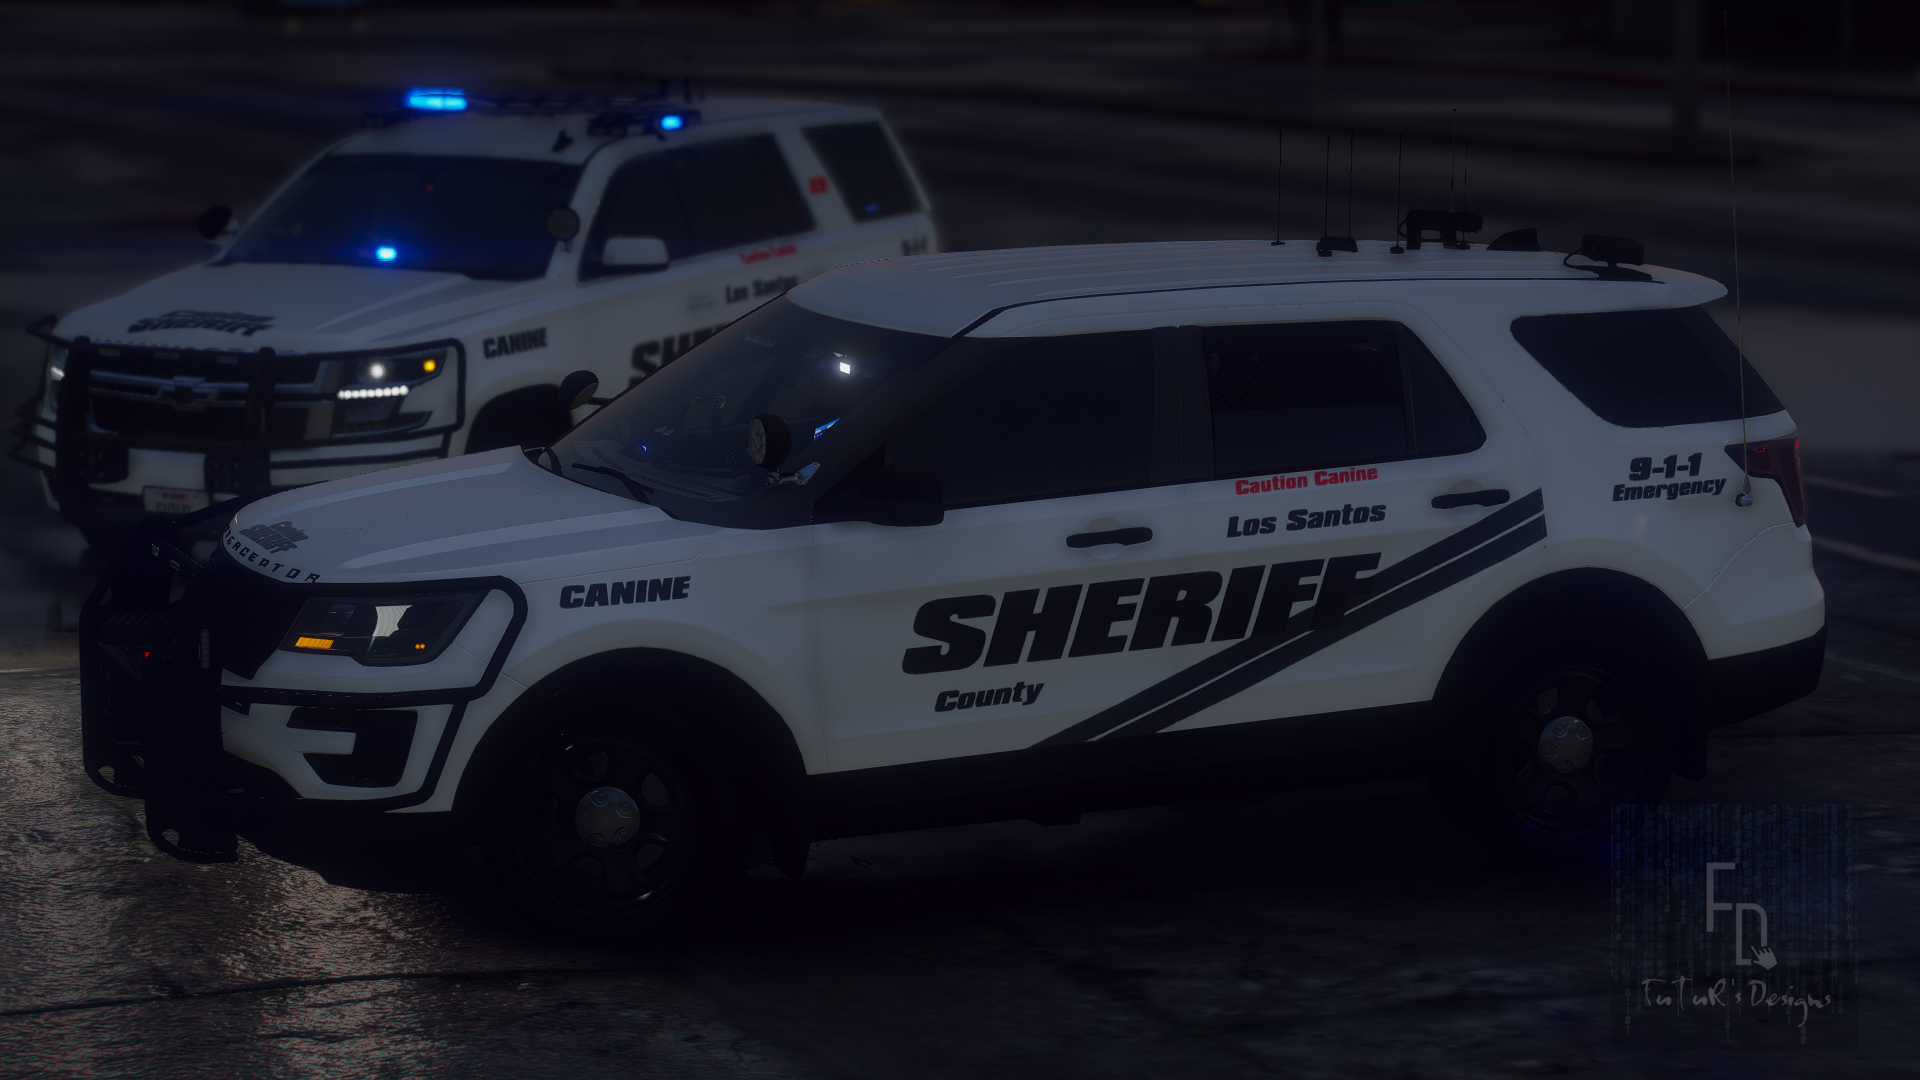 Grand_Theft_Auto_V_12_09_2021_21_17_23.png